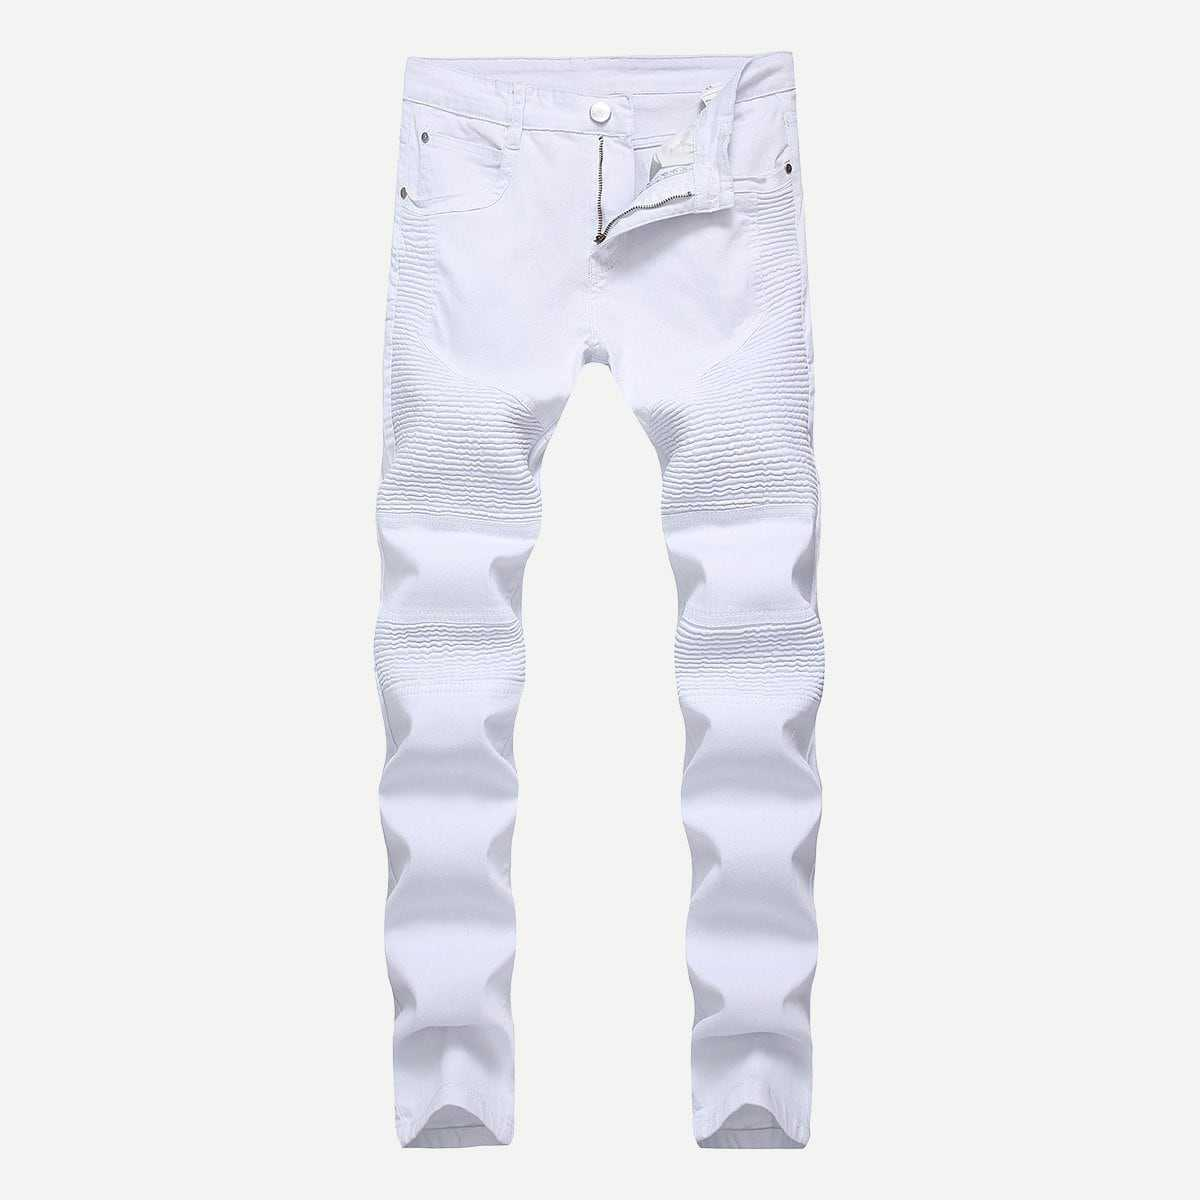 Guys Solid Jeans in White by ROMWE on GOOFASH